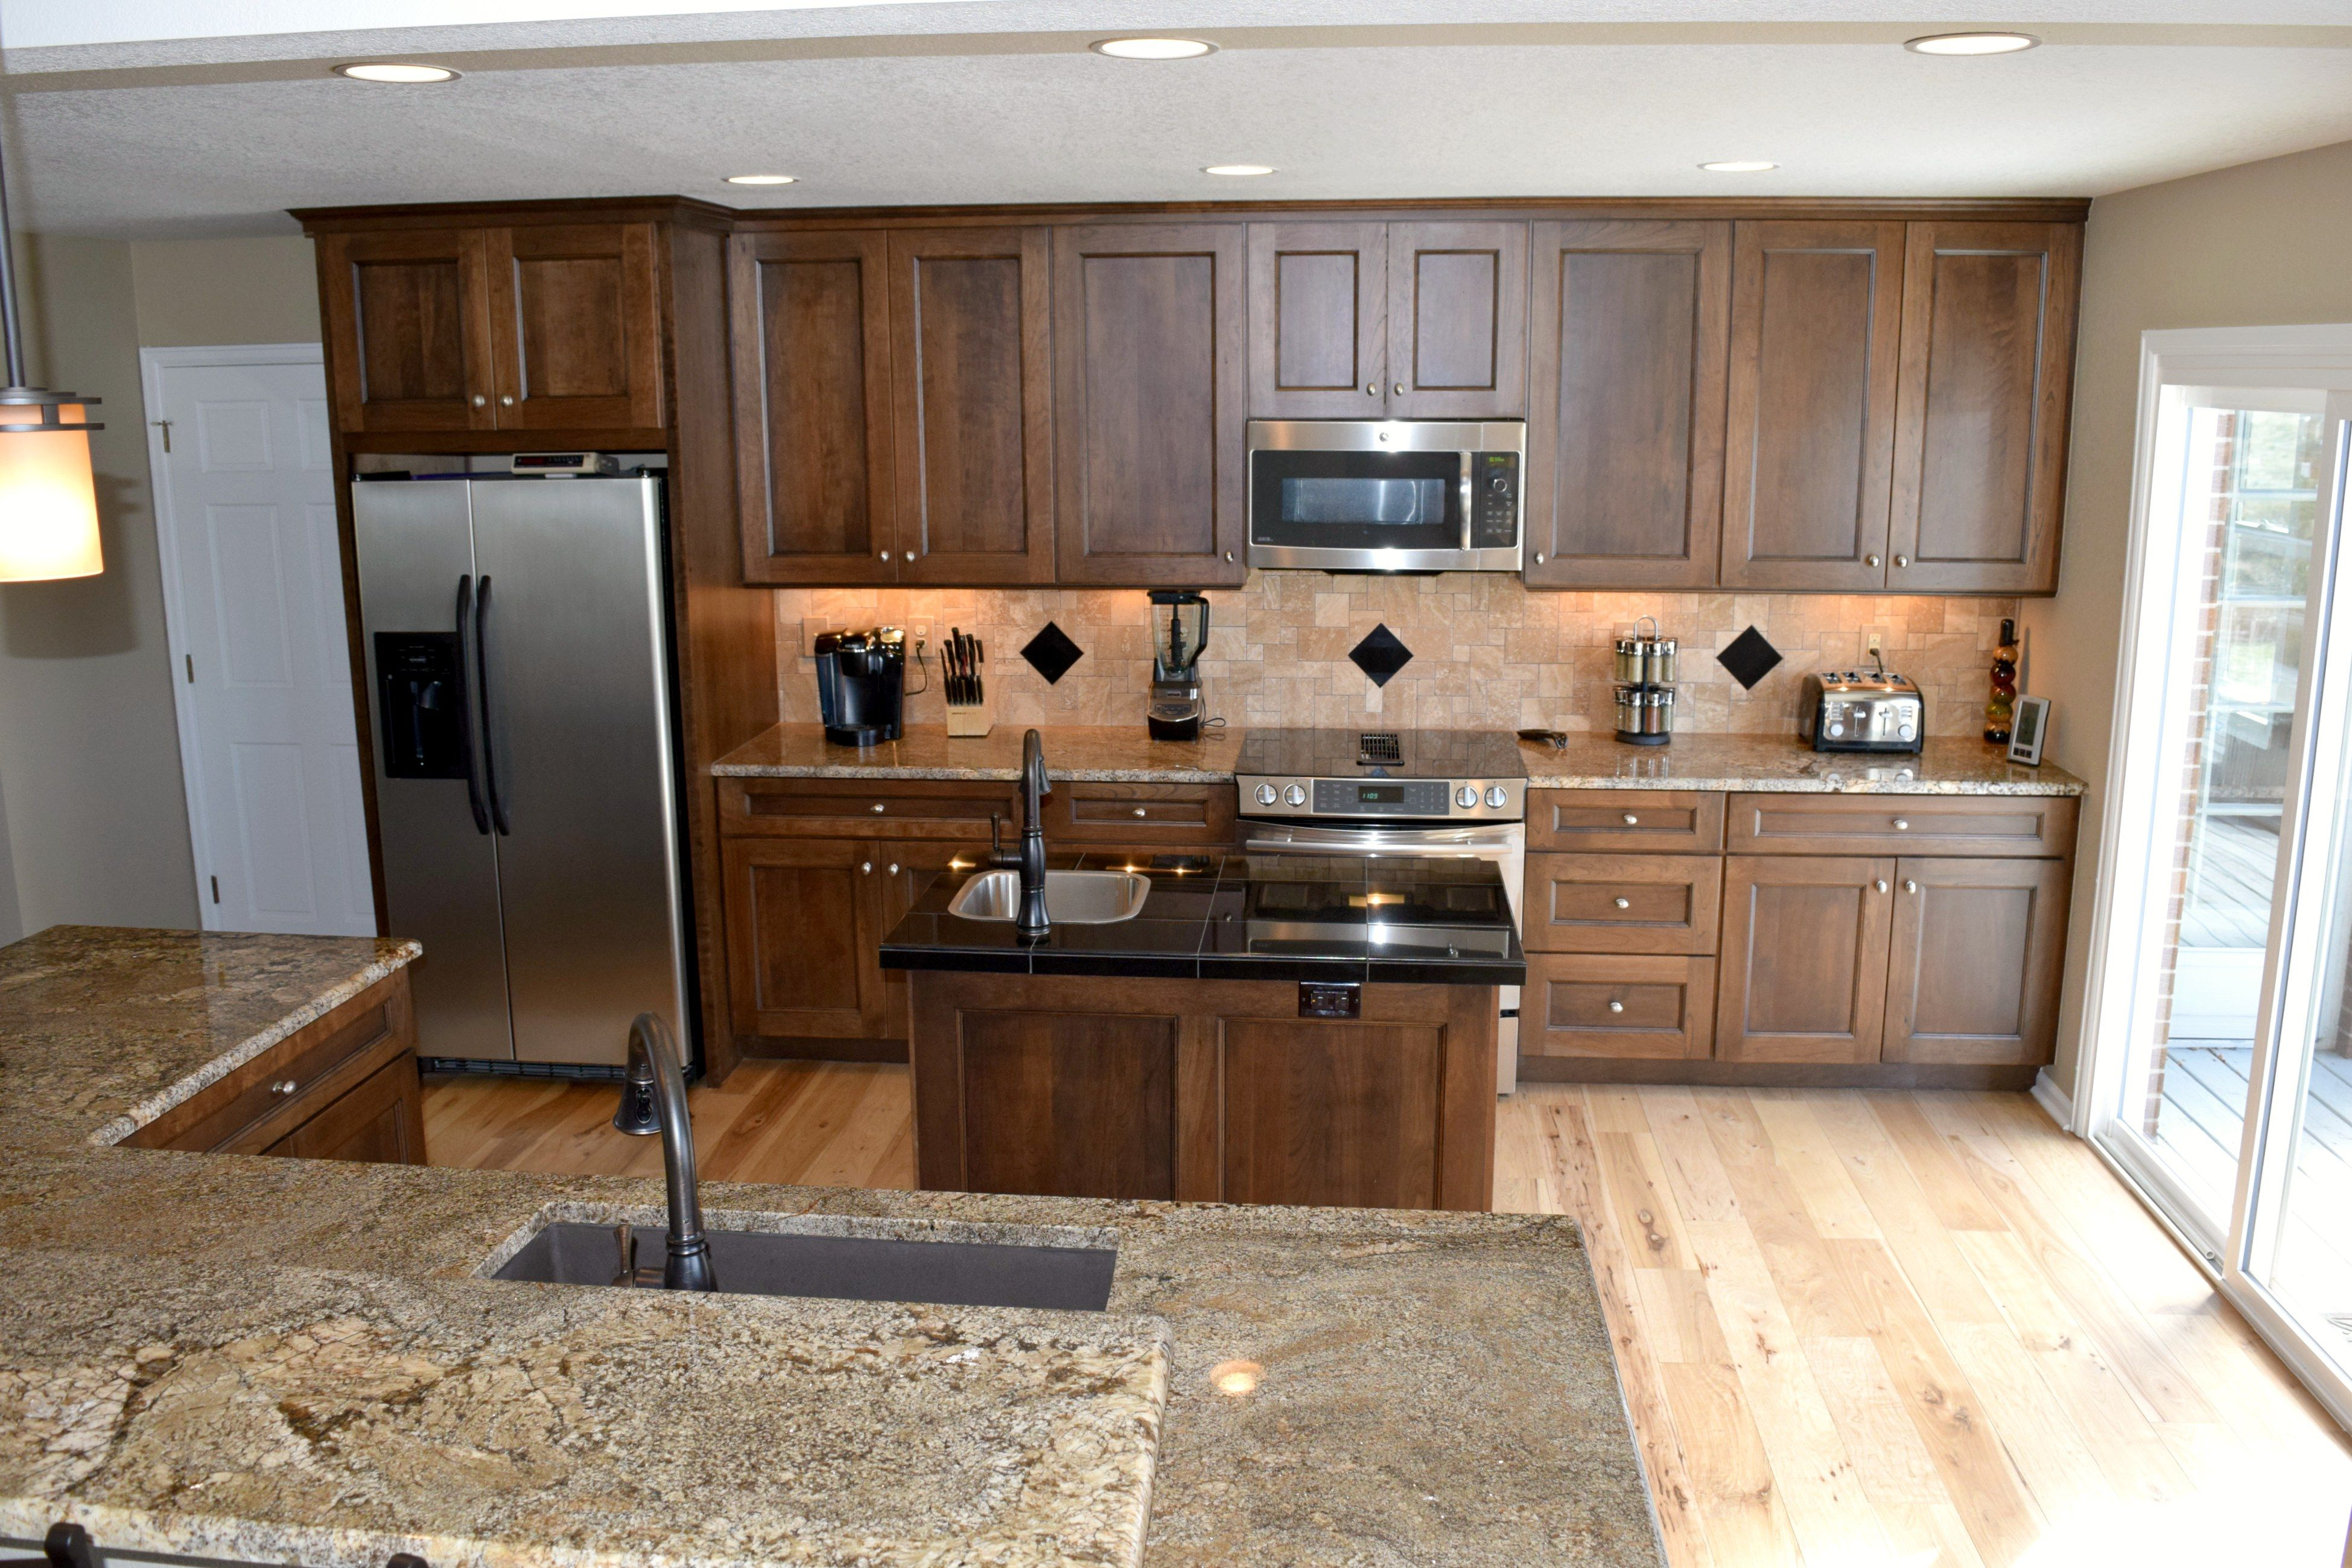 BKC Kitchen And Bath Kitchen Remodel   Medallion Cabinetry: Hartford Door  Style, Eagle Rock With Sable Glaze Finish On Maple.